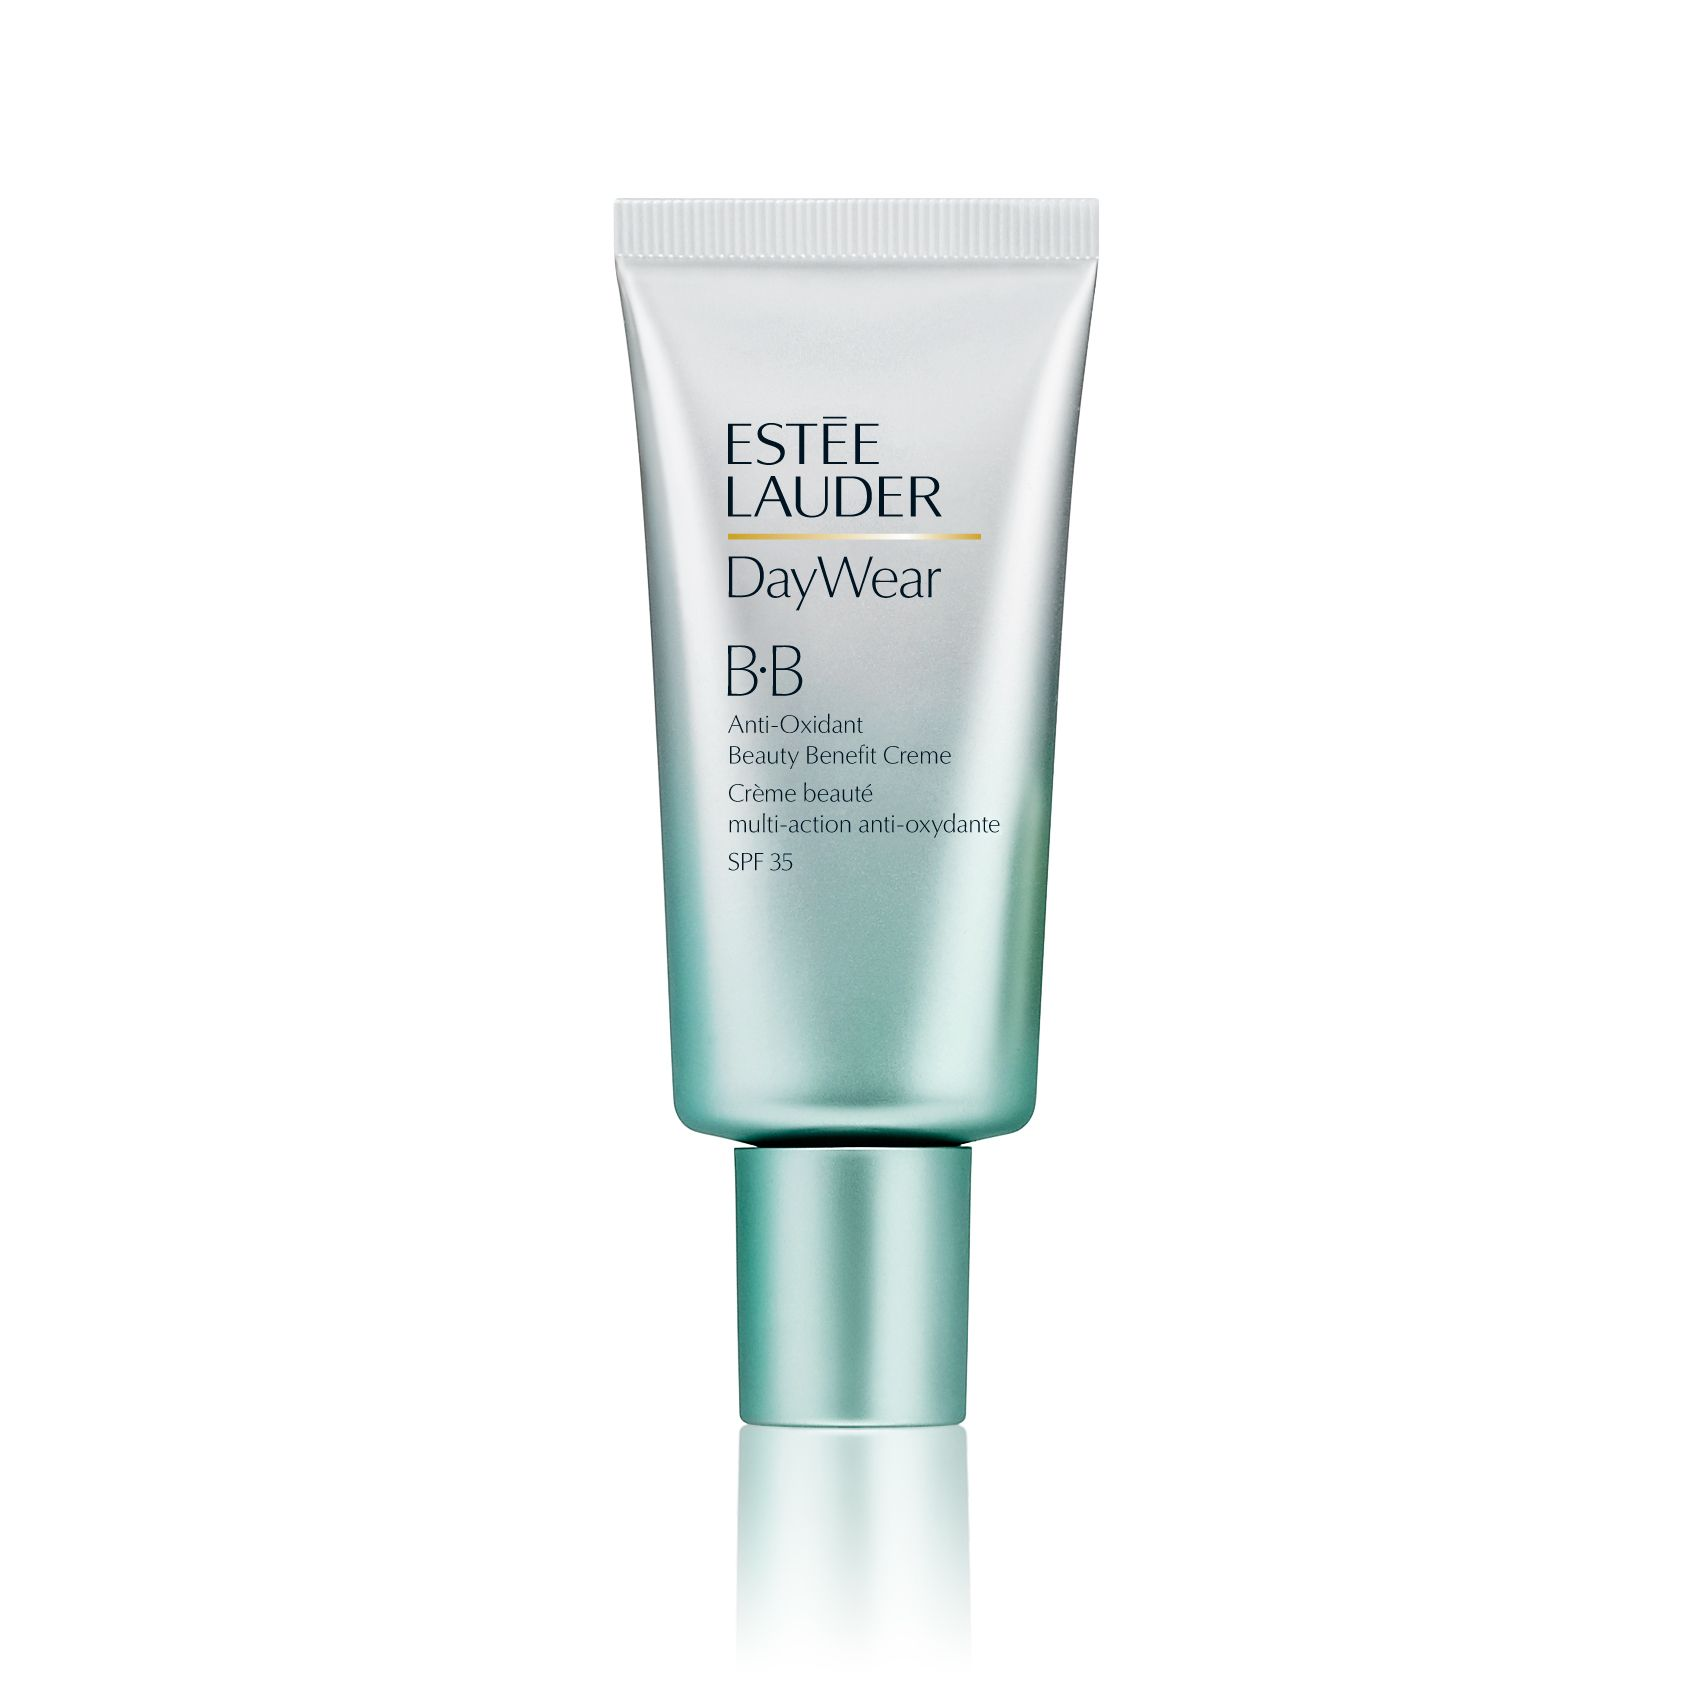 DayWear B.B. Anti-Oxidant Beauty Benefit Cream